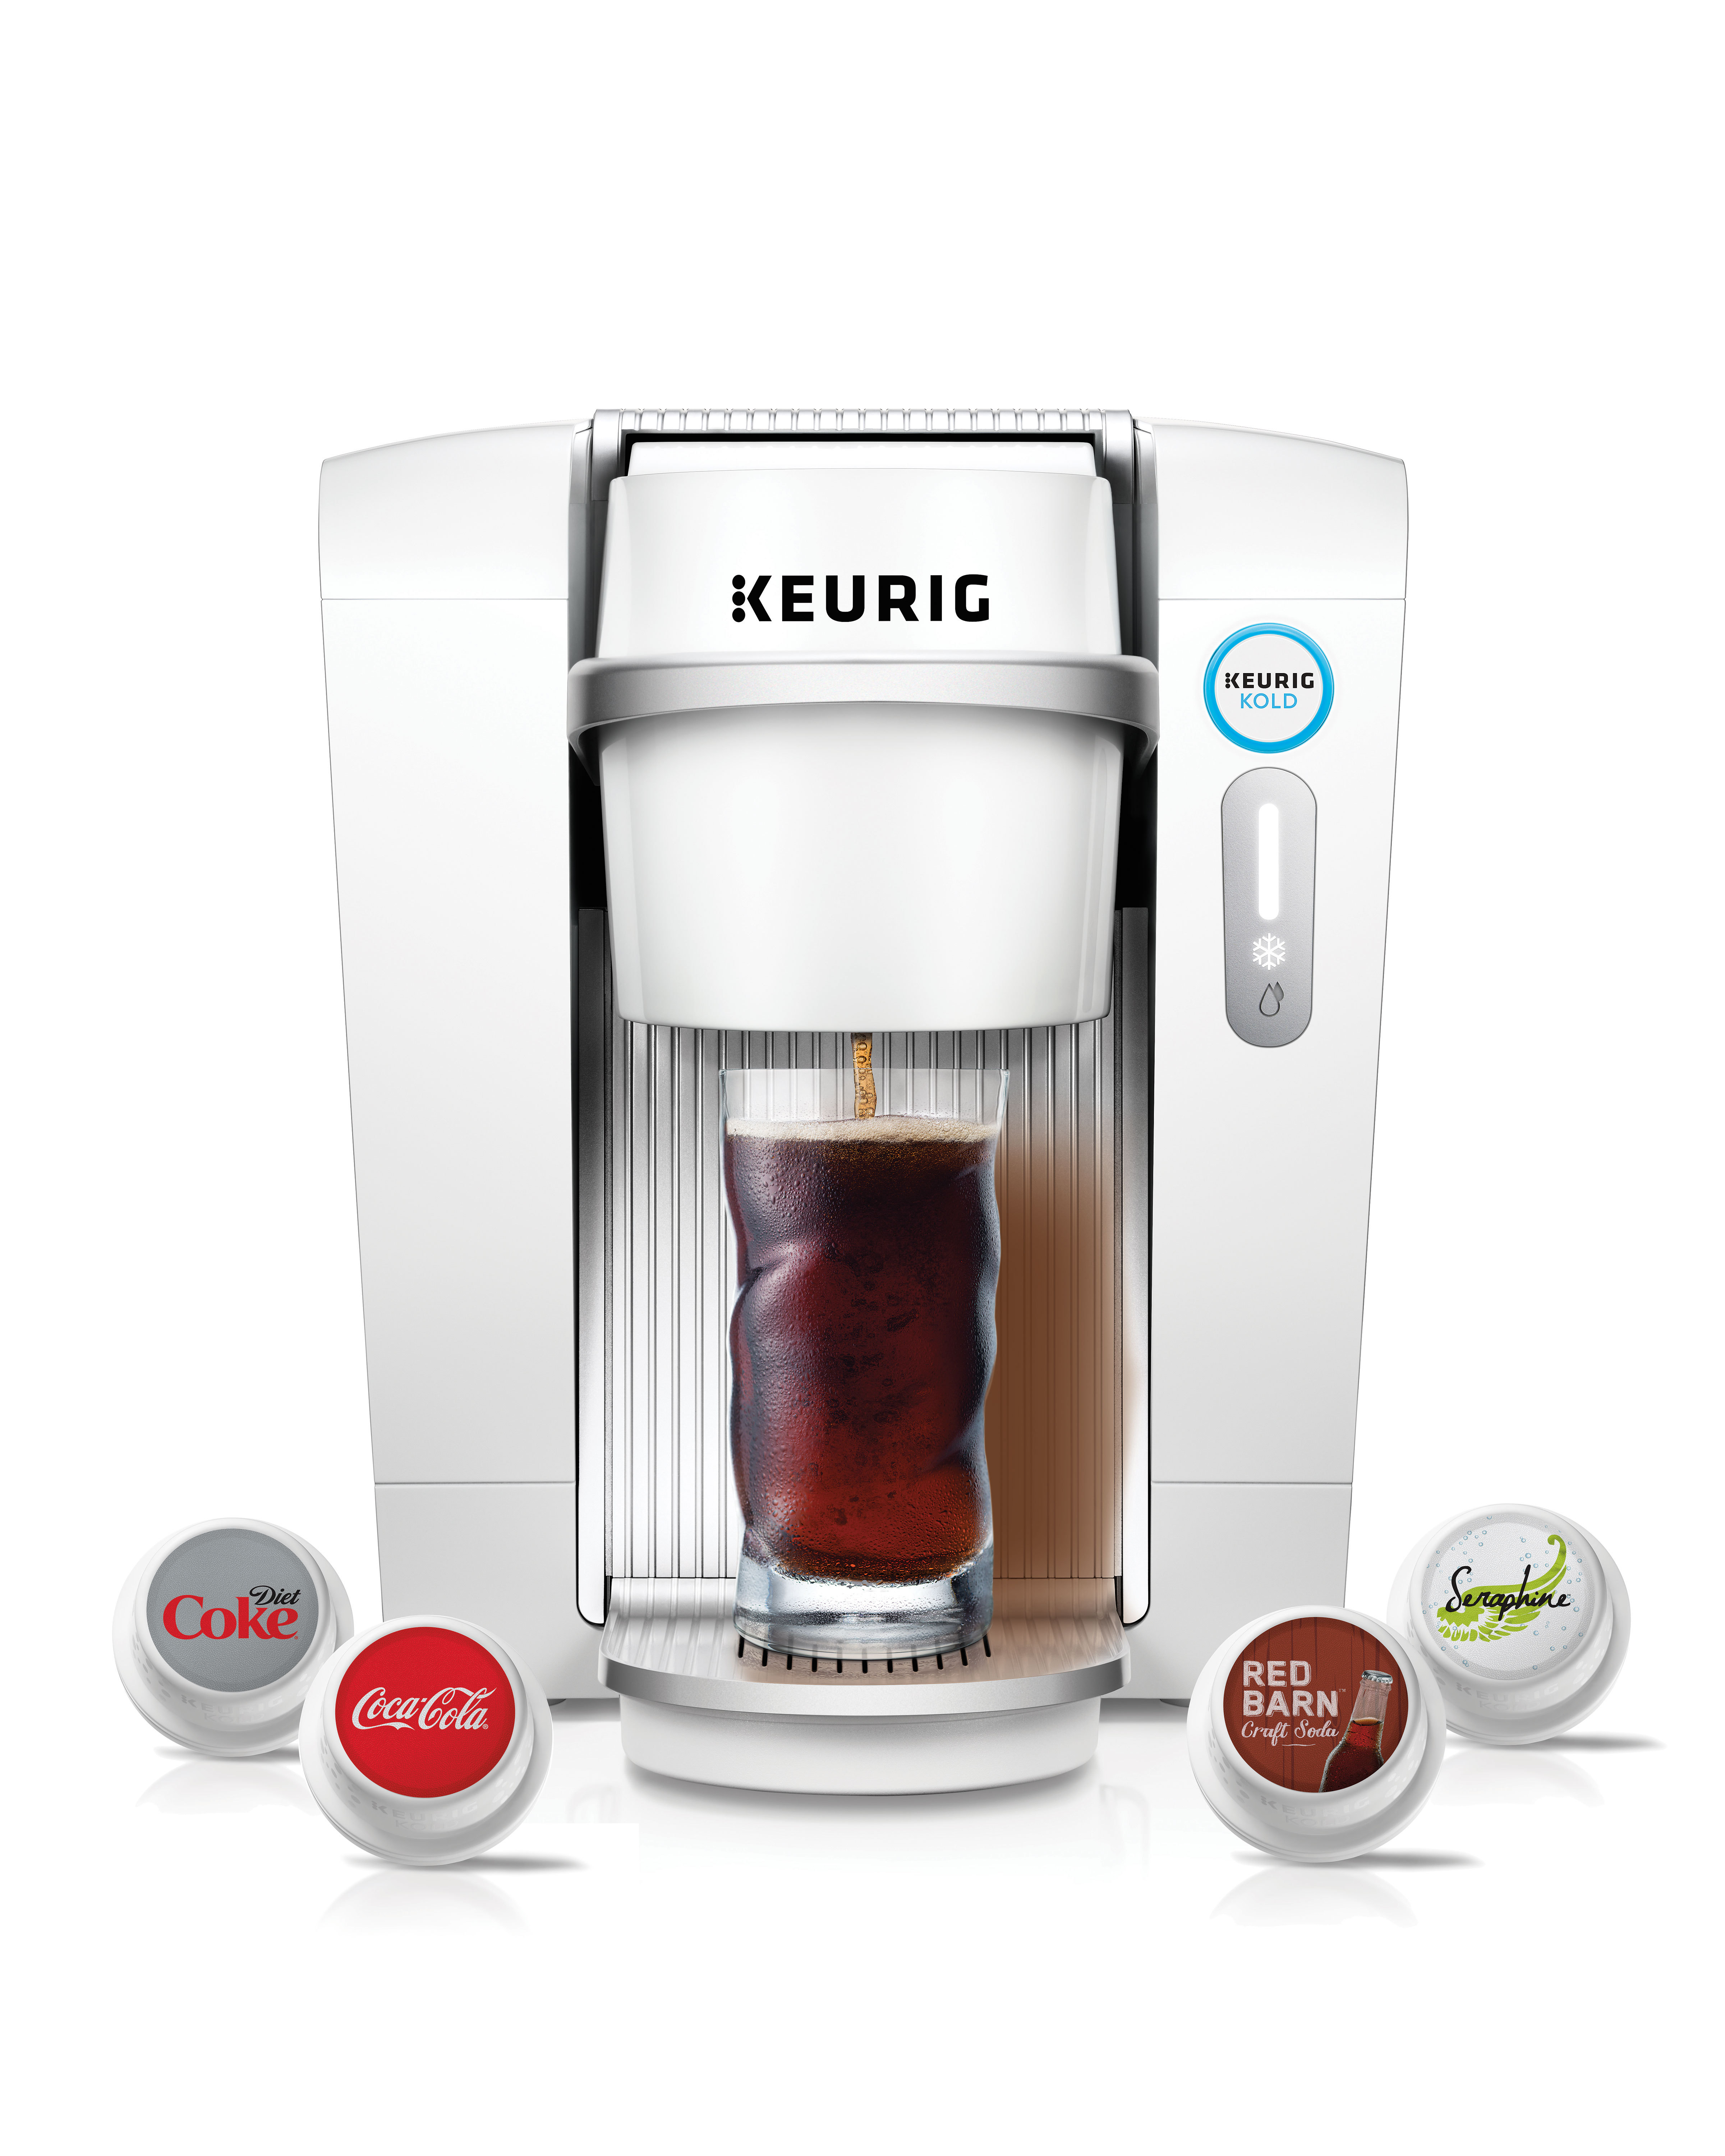 Keurig Launches New Kold Beverage System